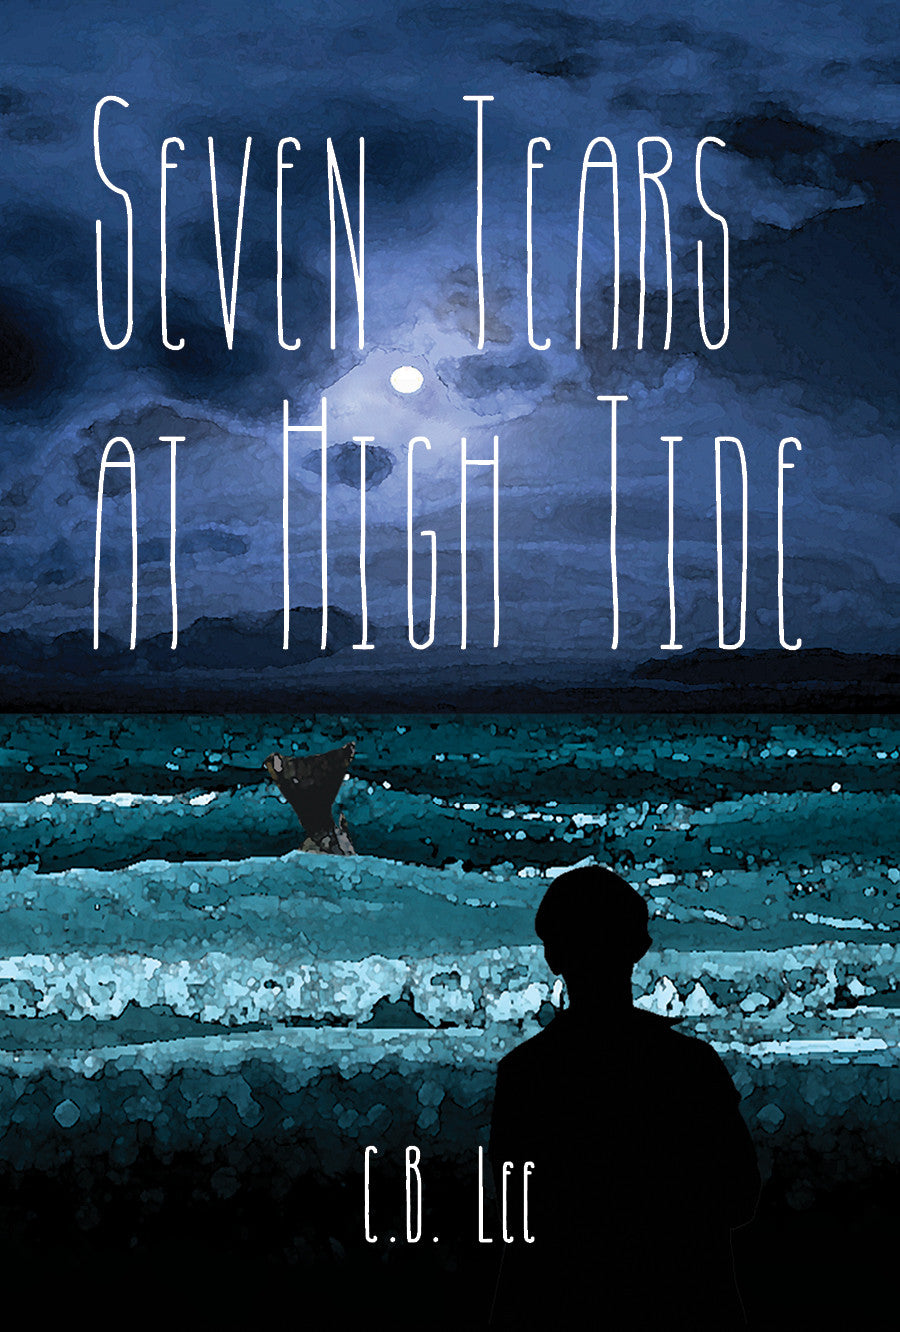 Seven Tears at High Tide by C.B. Lee (printed book)